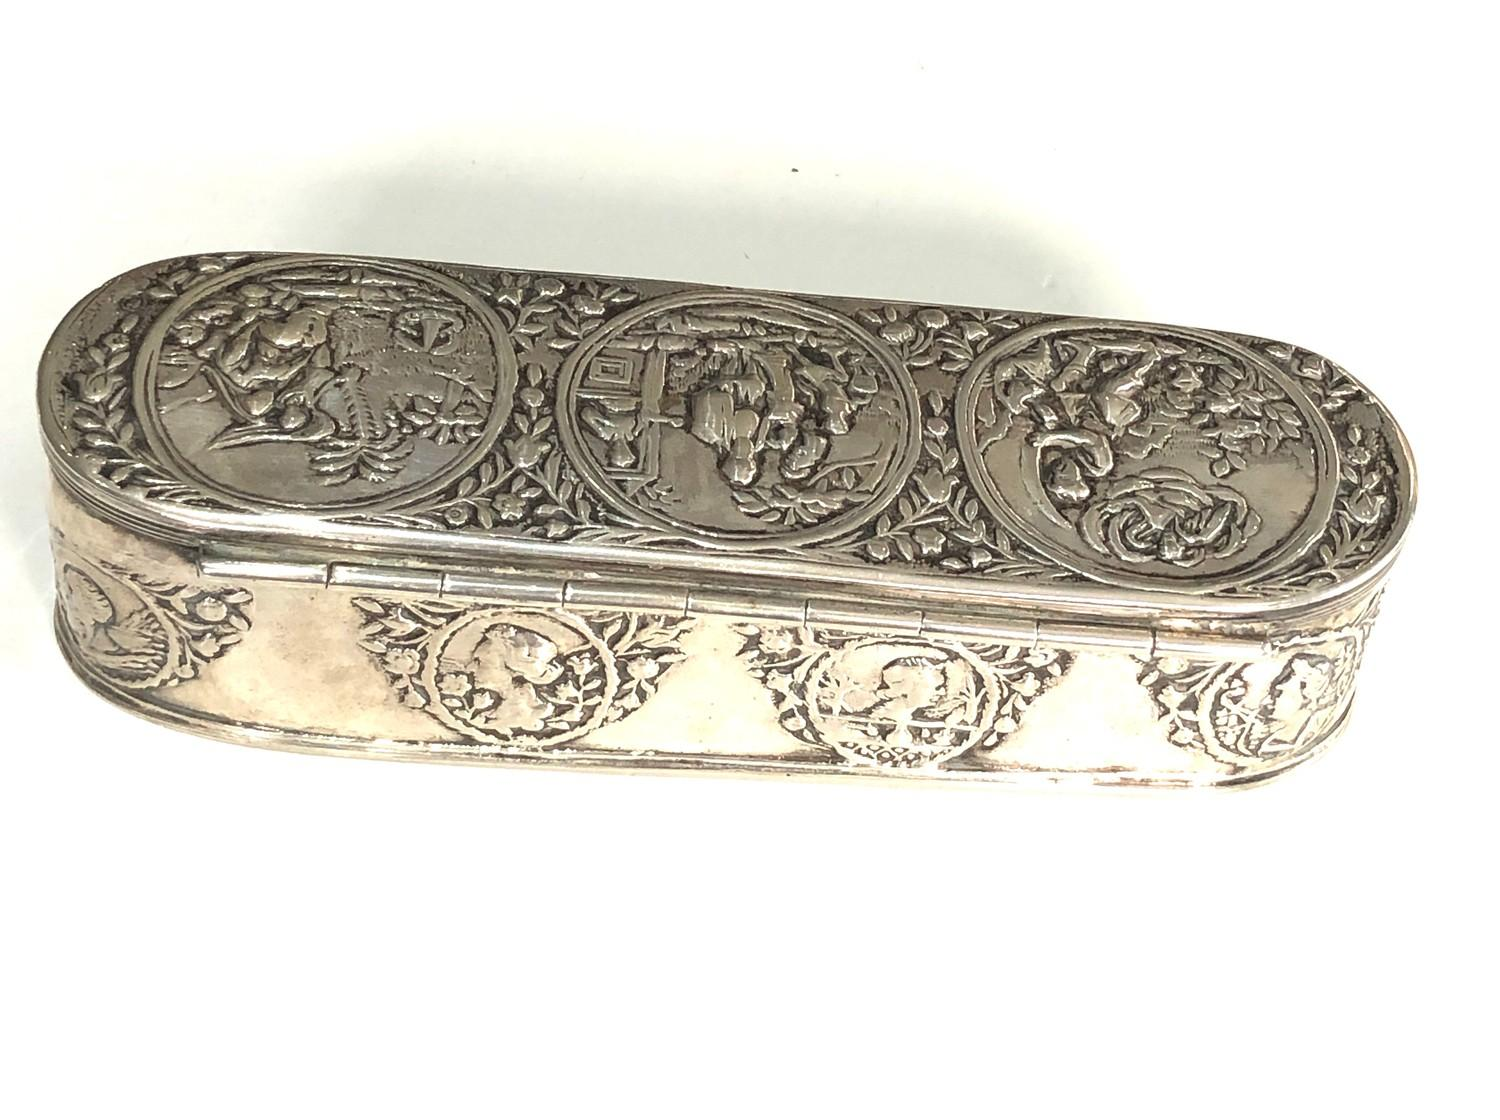 Antique Dutch silver tobacco box the hinged cover chased with scenes measures approx 16cm by 5cm 3. - Image 10 of 14